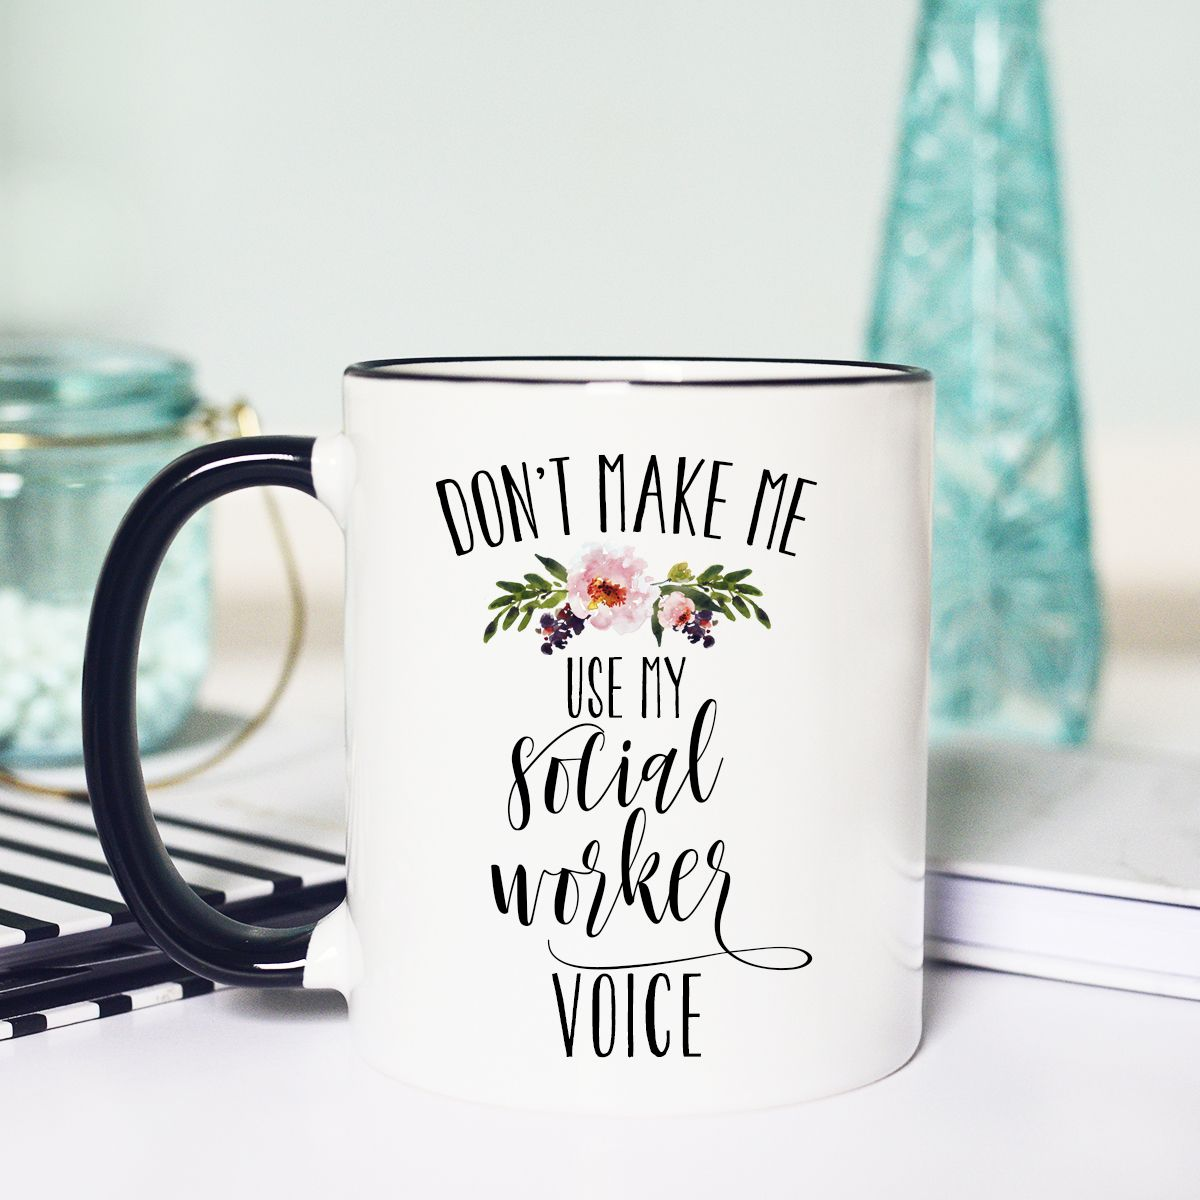 Awesome Social Worker Printed Cup Ceramic Novelty Mug Funny Gift Coffee Tea